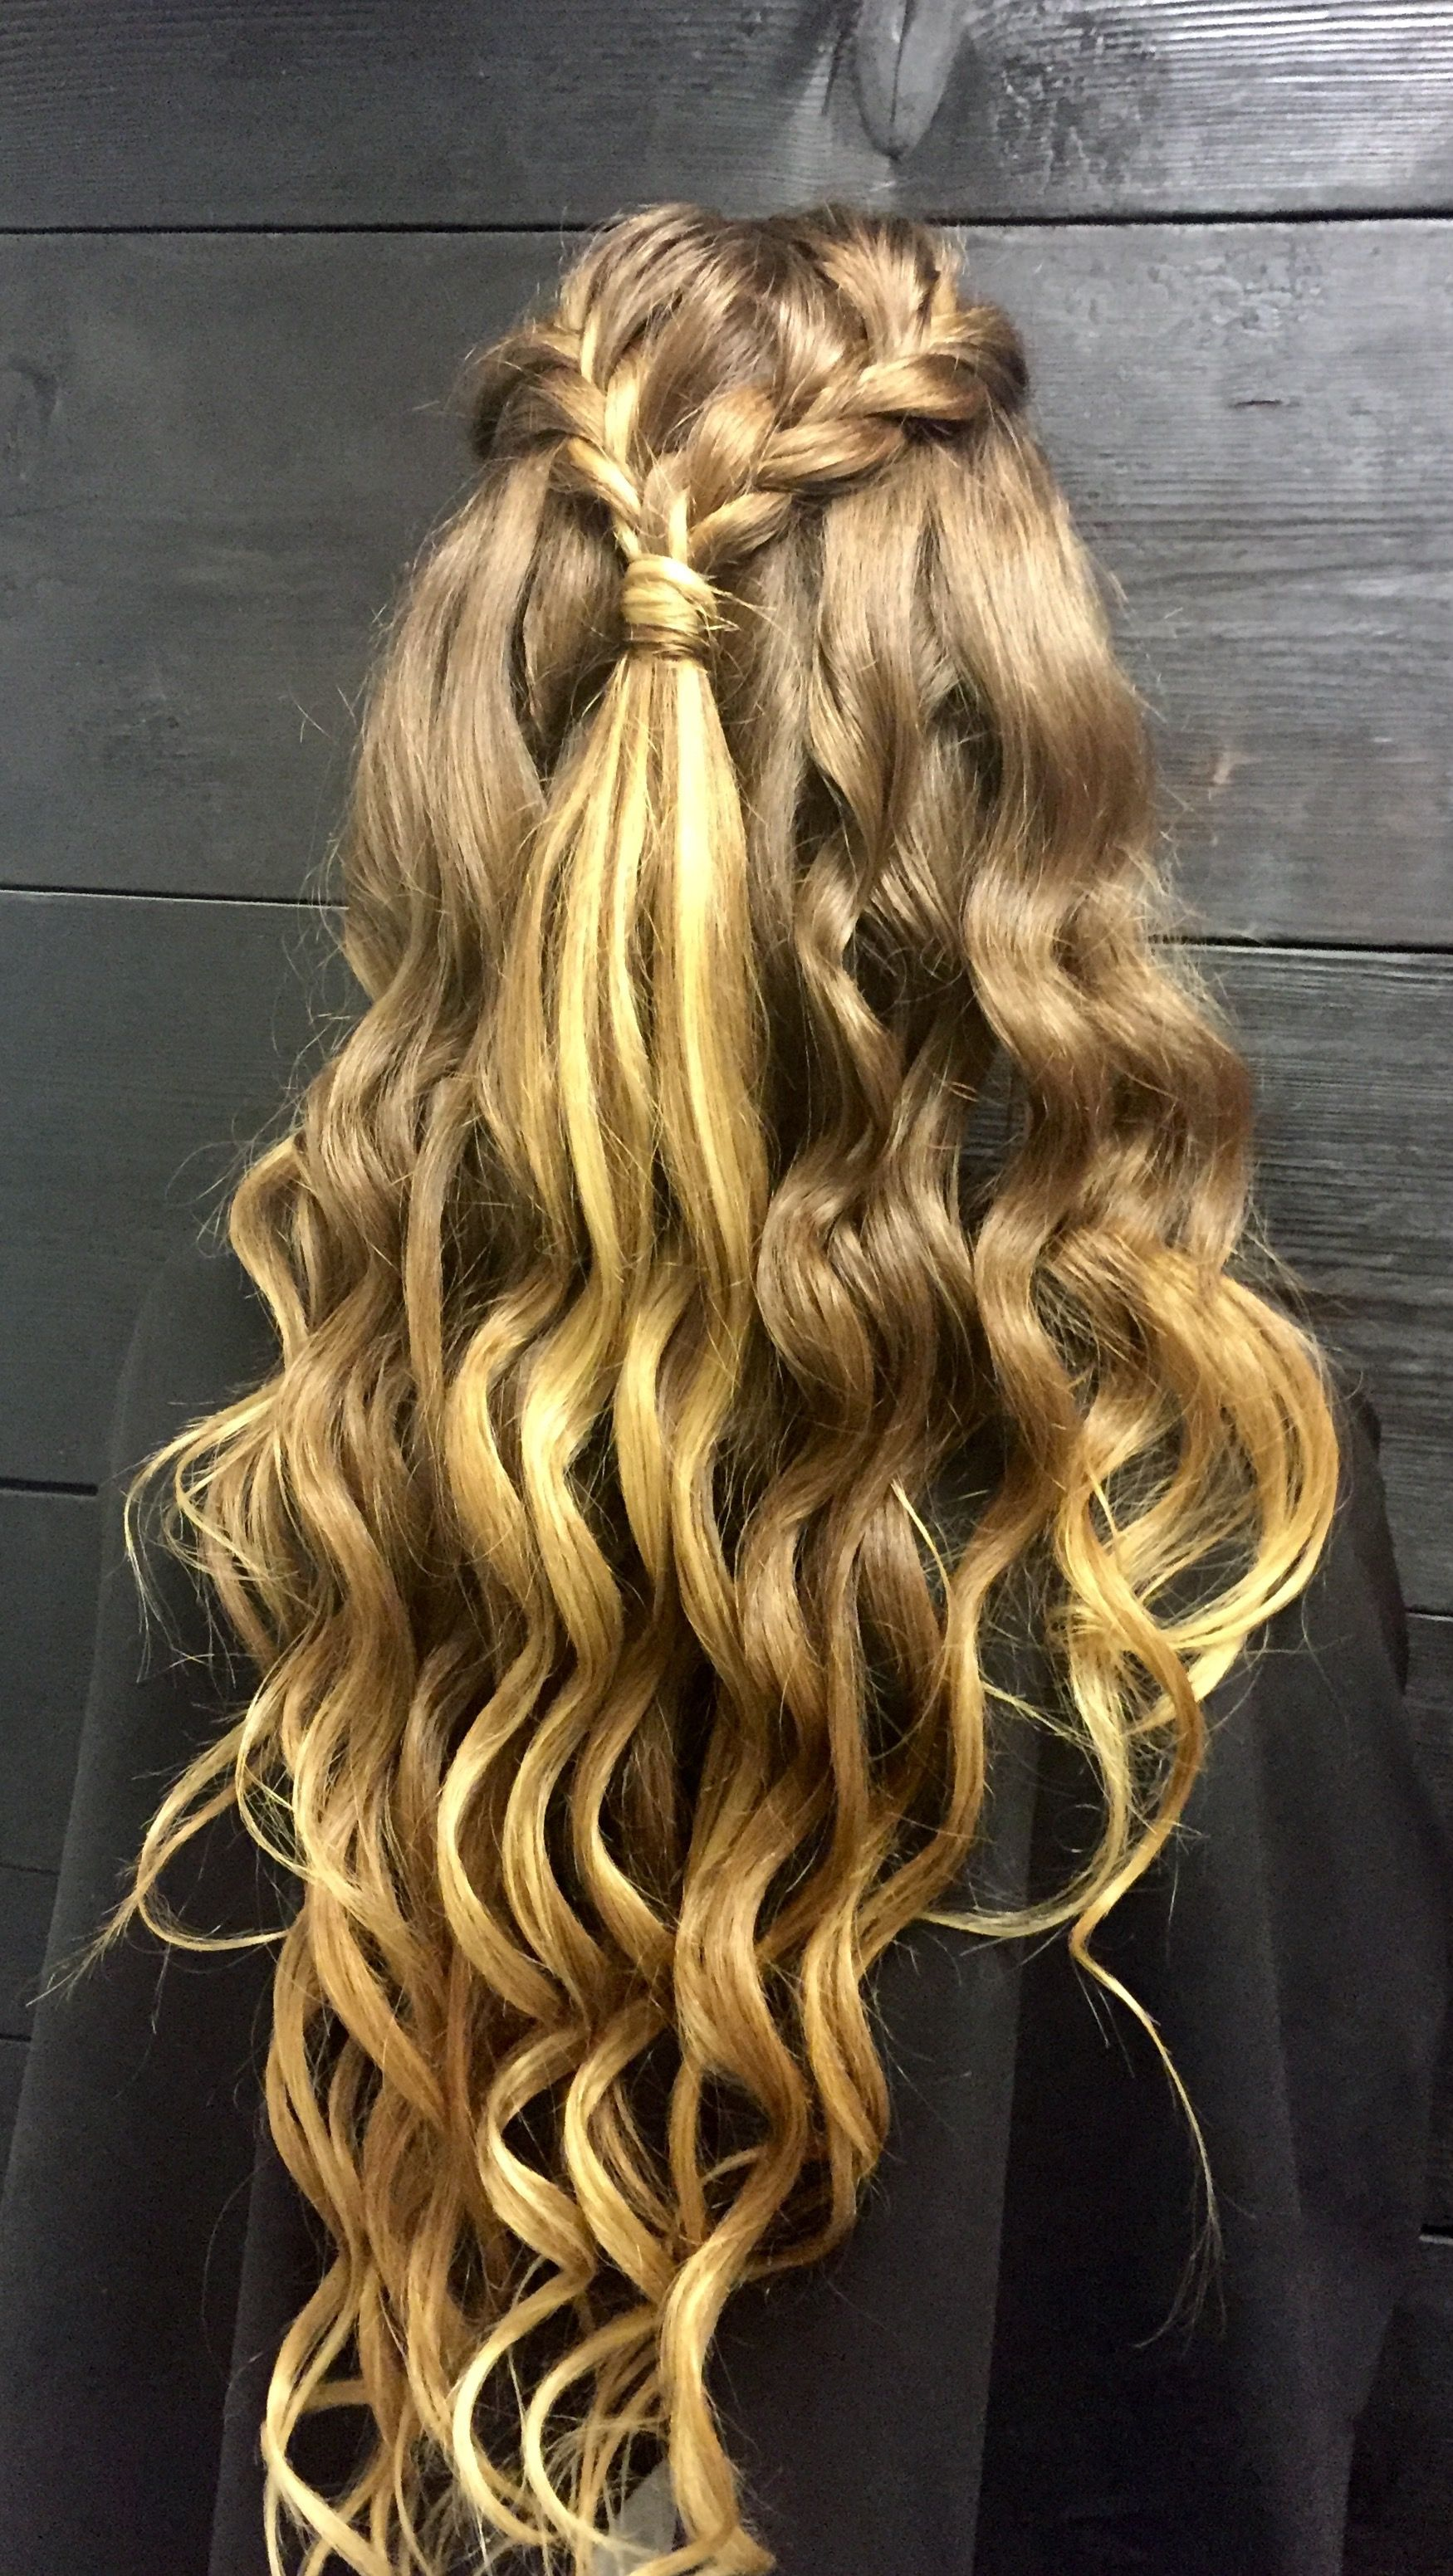 Braided and curled Half up Half down summer festival ready